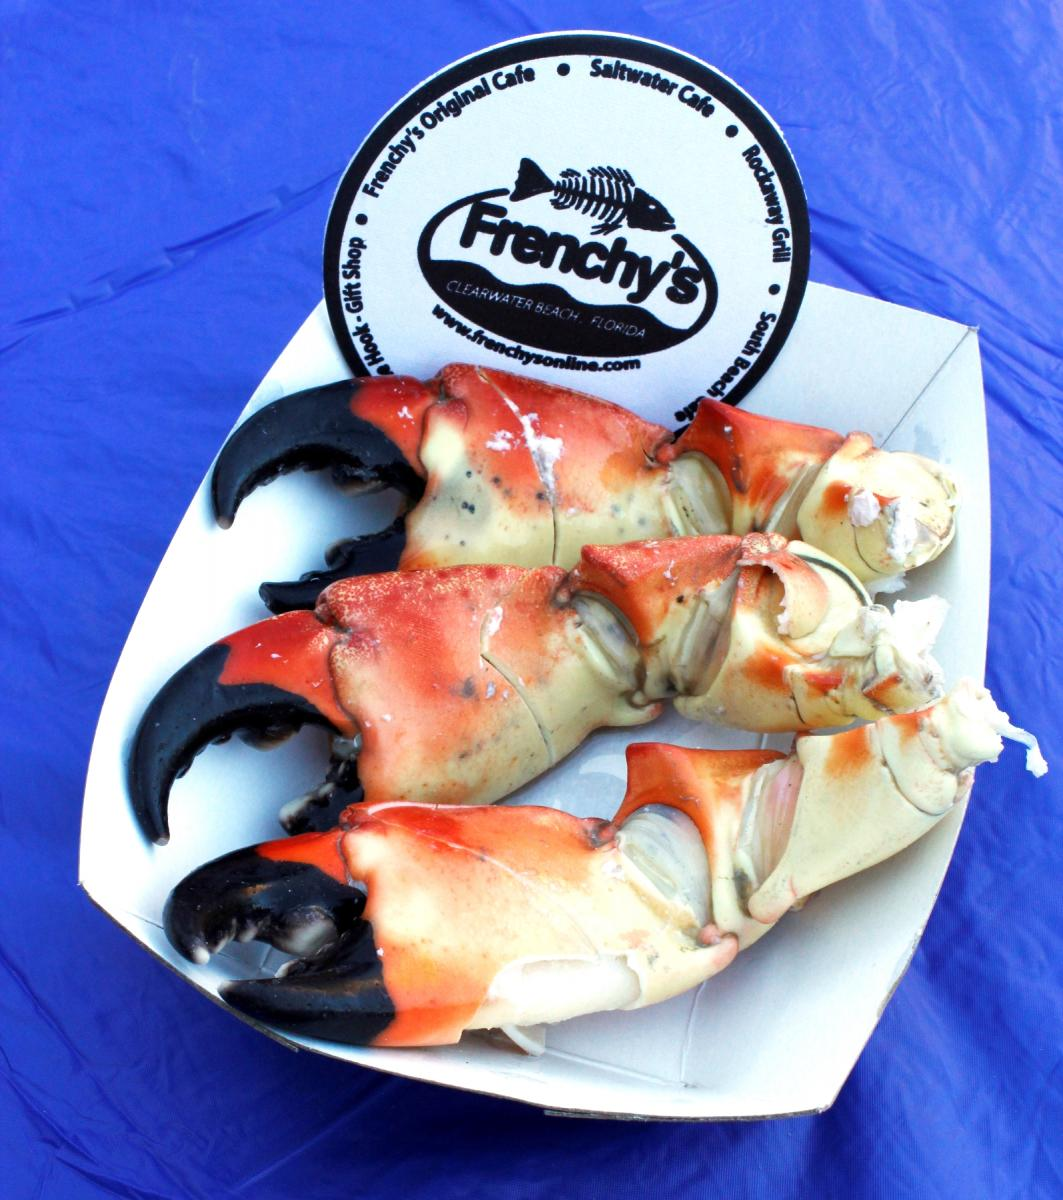 Get Cracking! Stone Crab Season 2019 in St. Petersburg/Clearwater